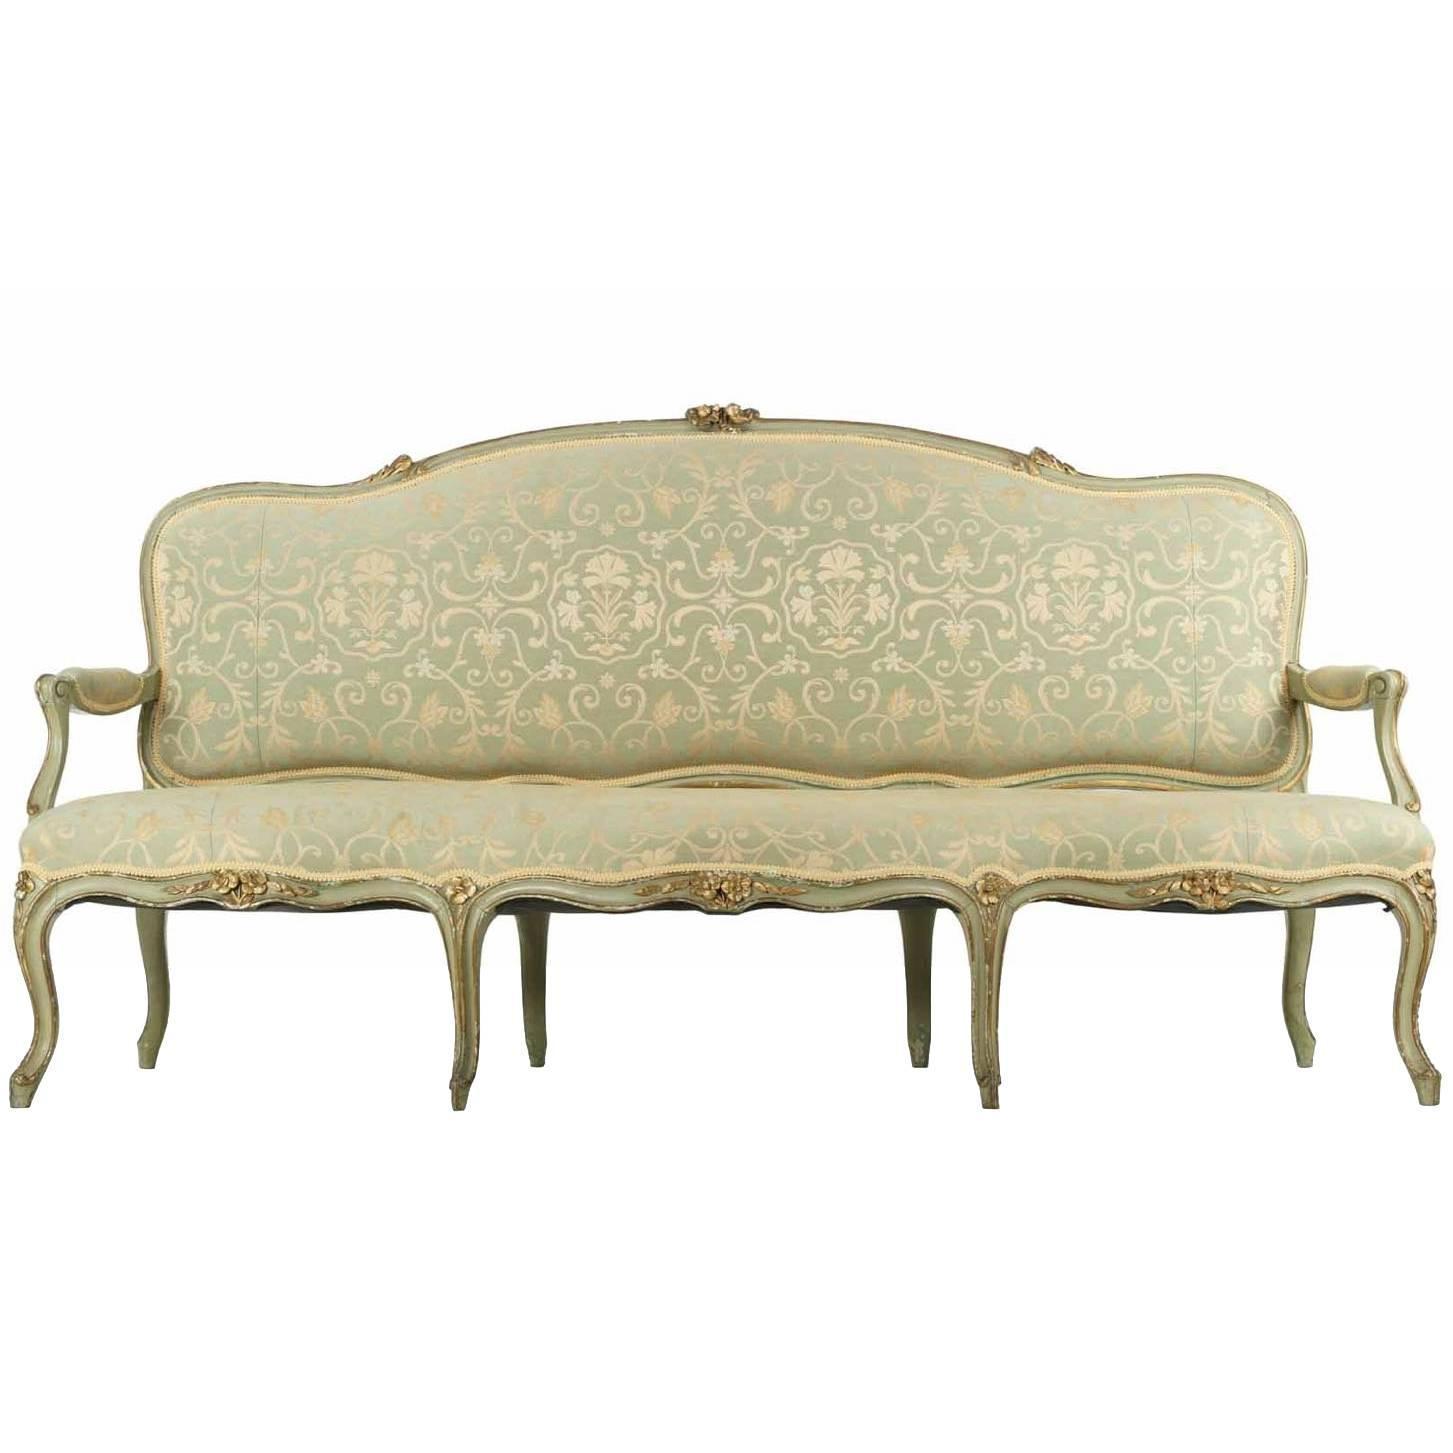 French Louis Xv Style Green Painted Antique Settee Sofa 19th Century At 1stdibs